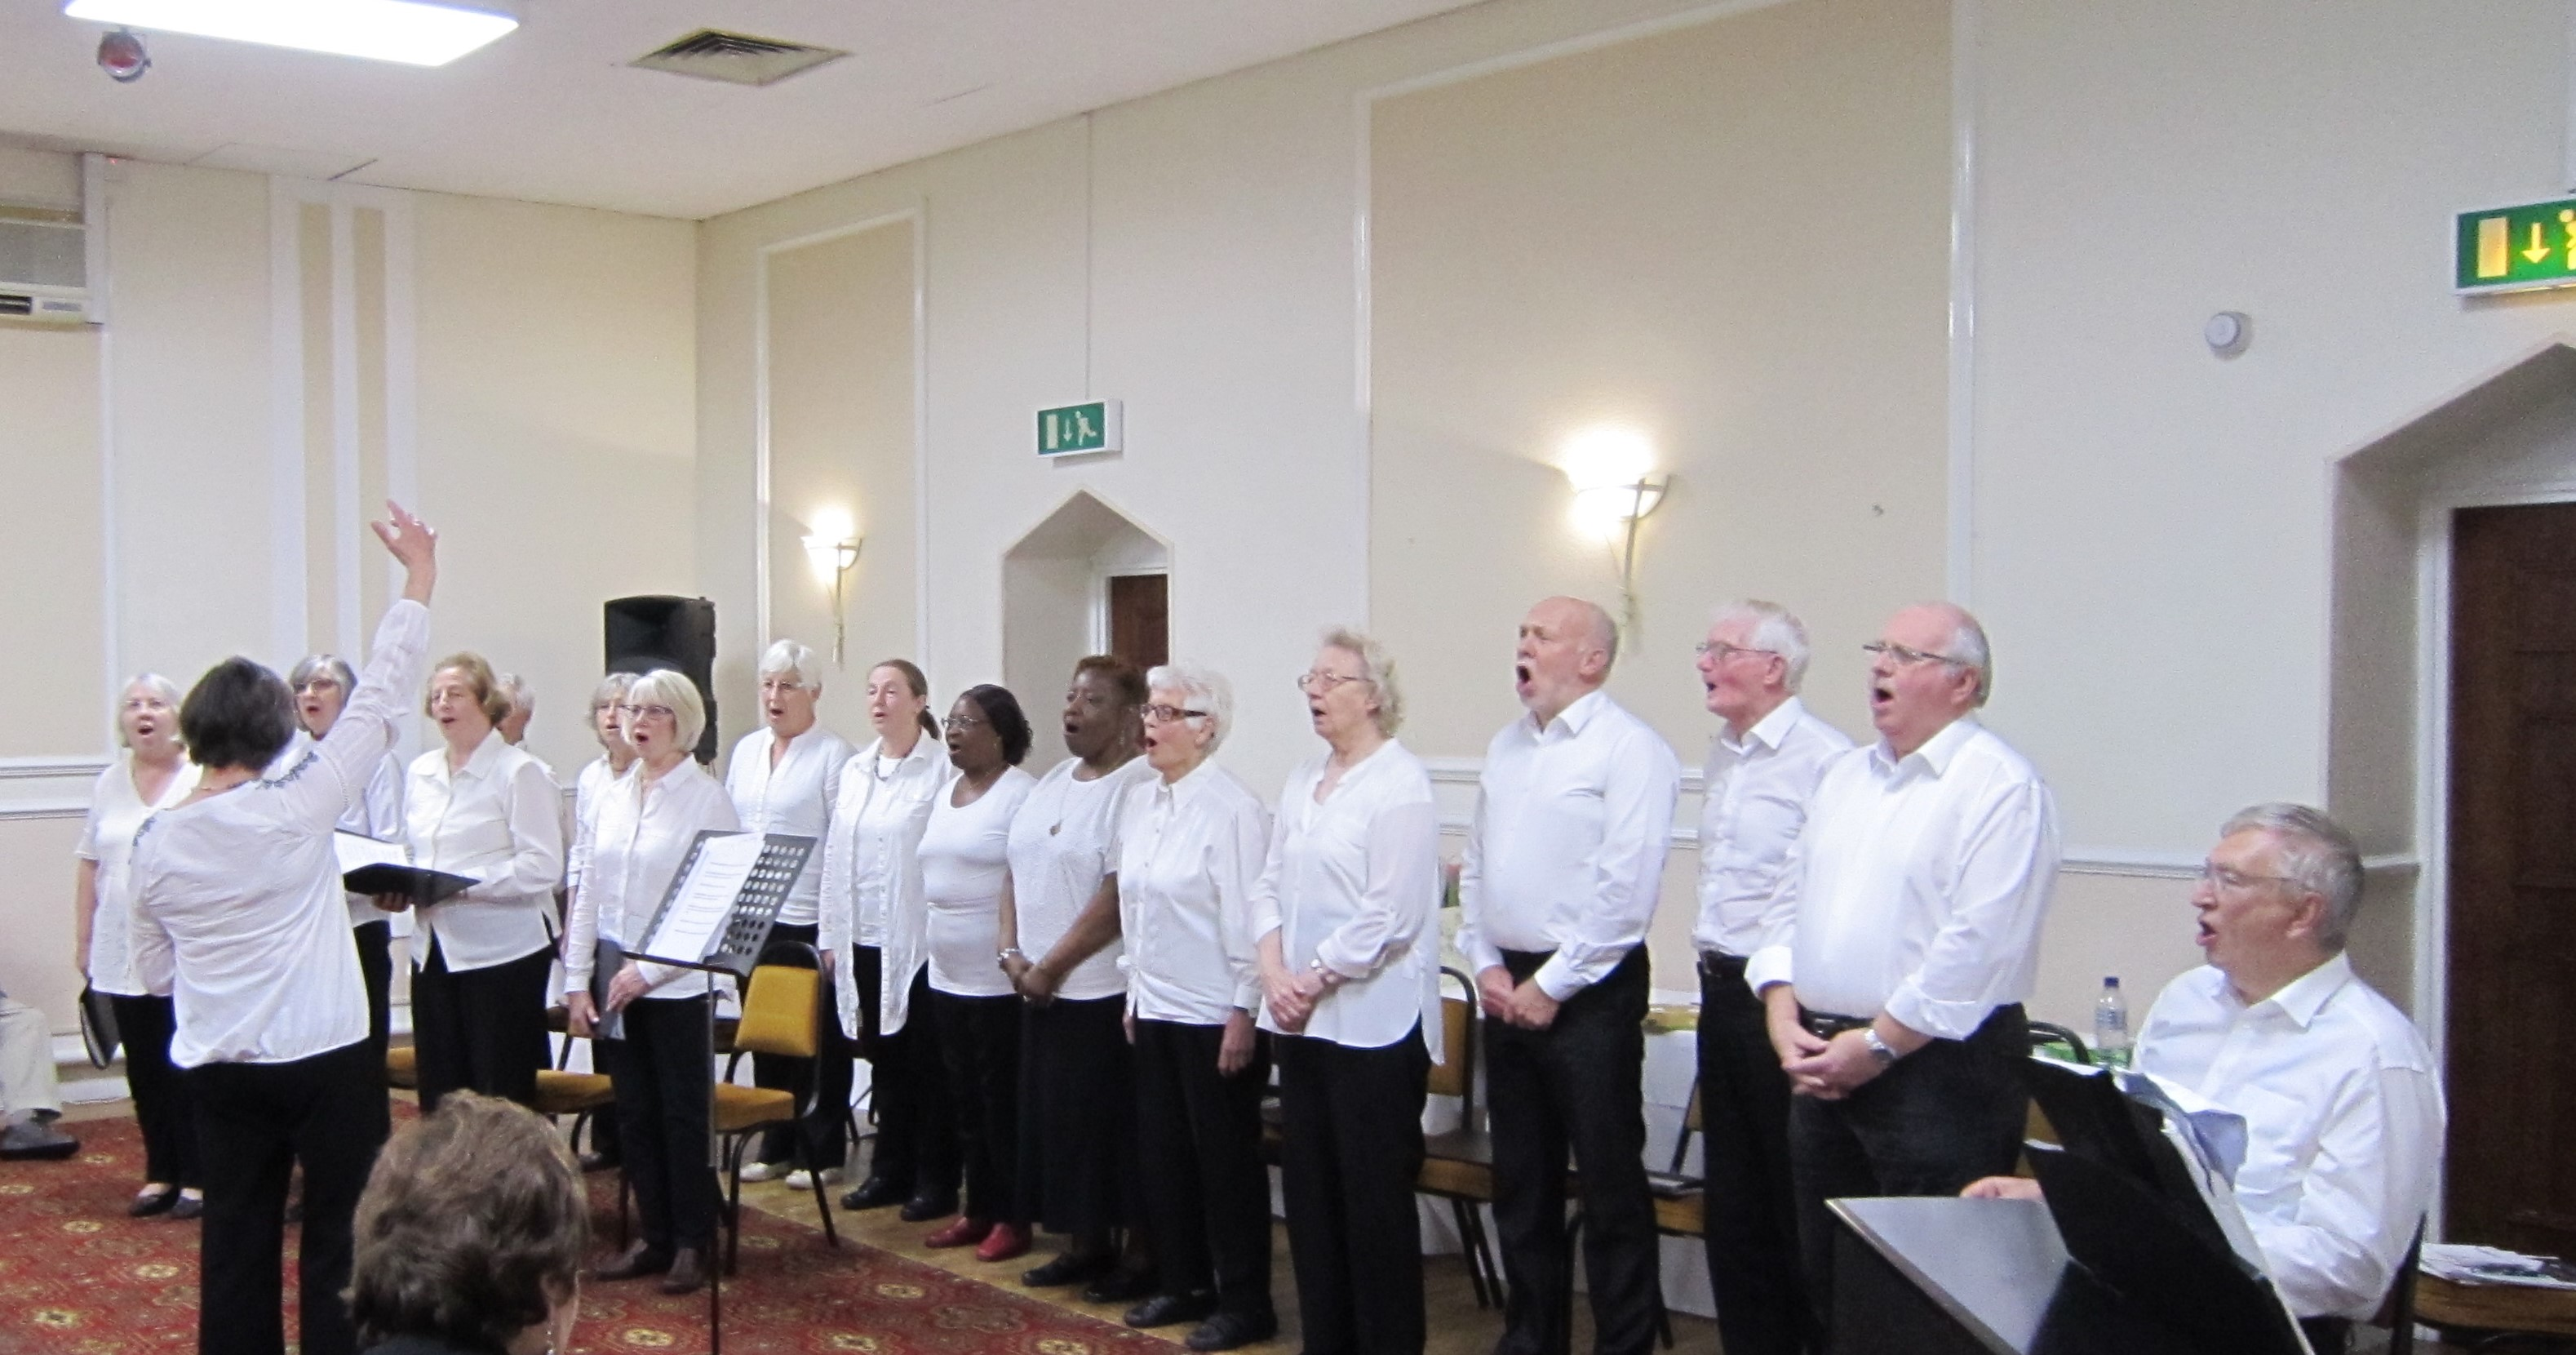 The Choir singing for the members